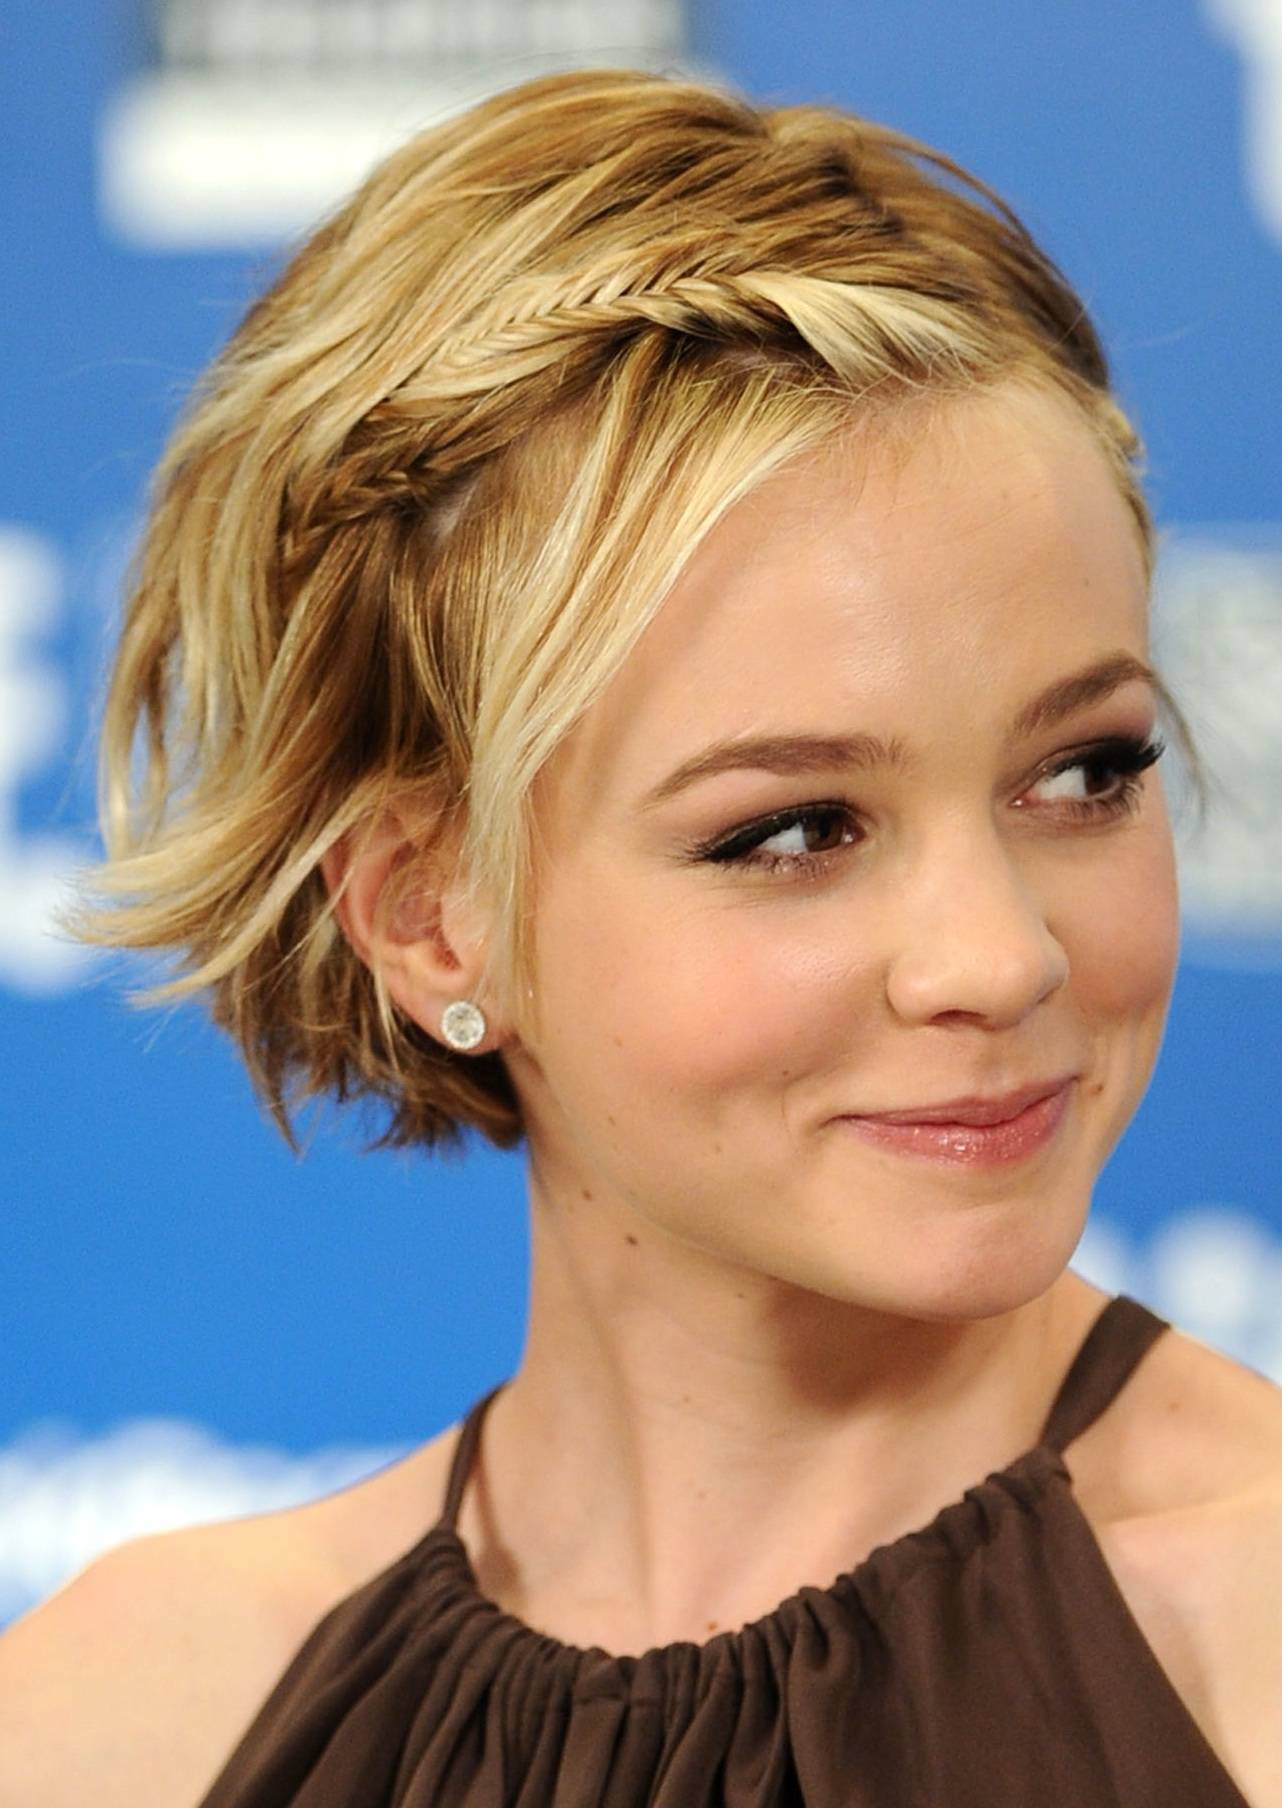 21 Short Hairstyles for Round Faces